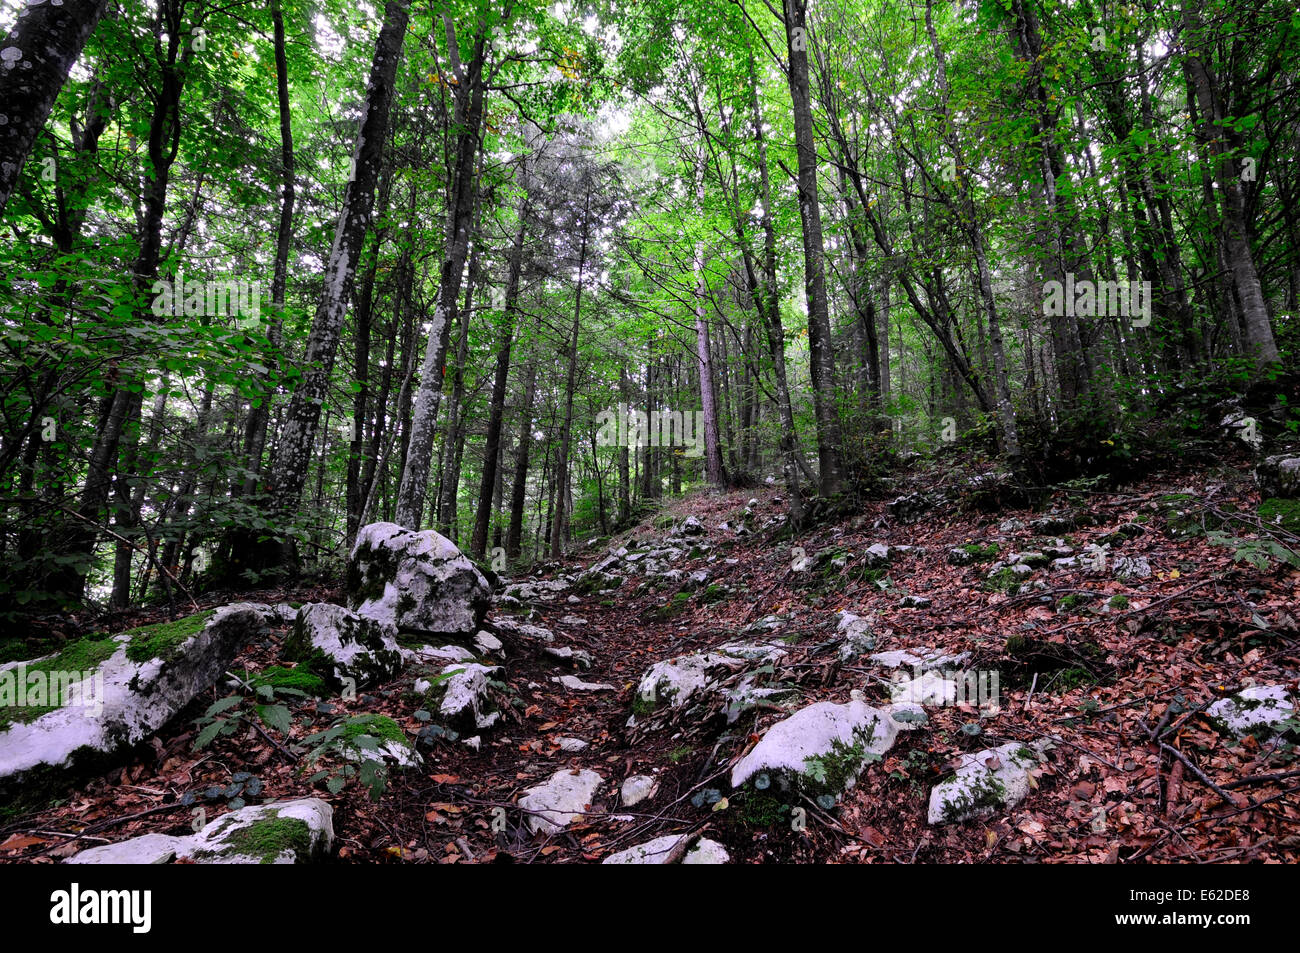 An old forest of firs - Stock Image